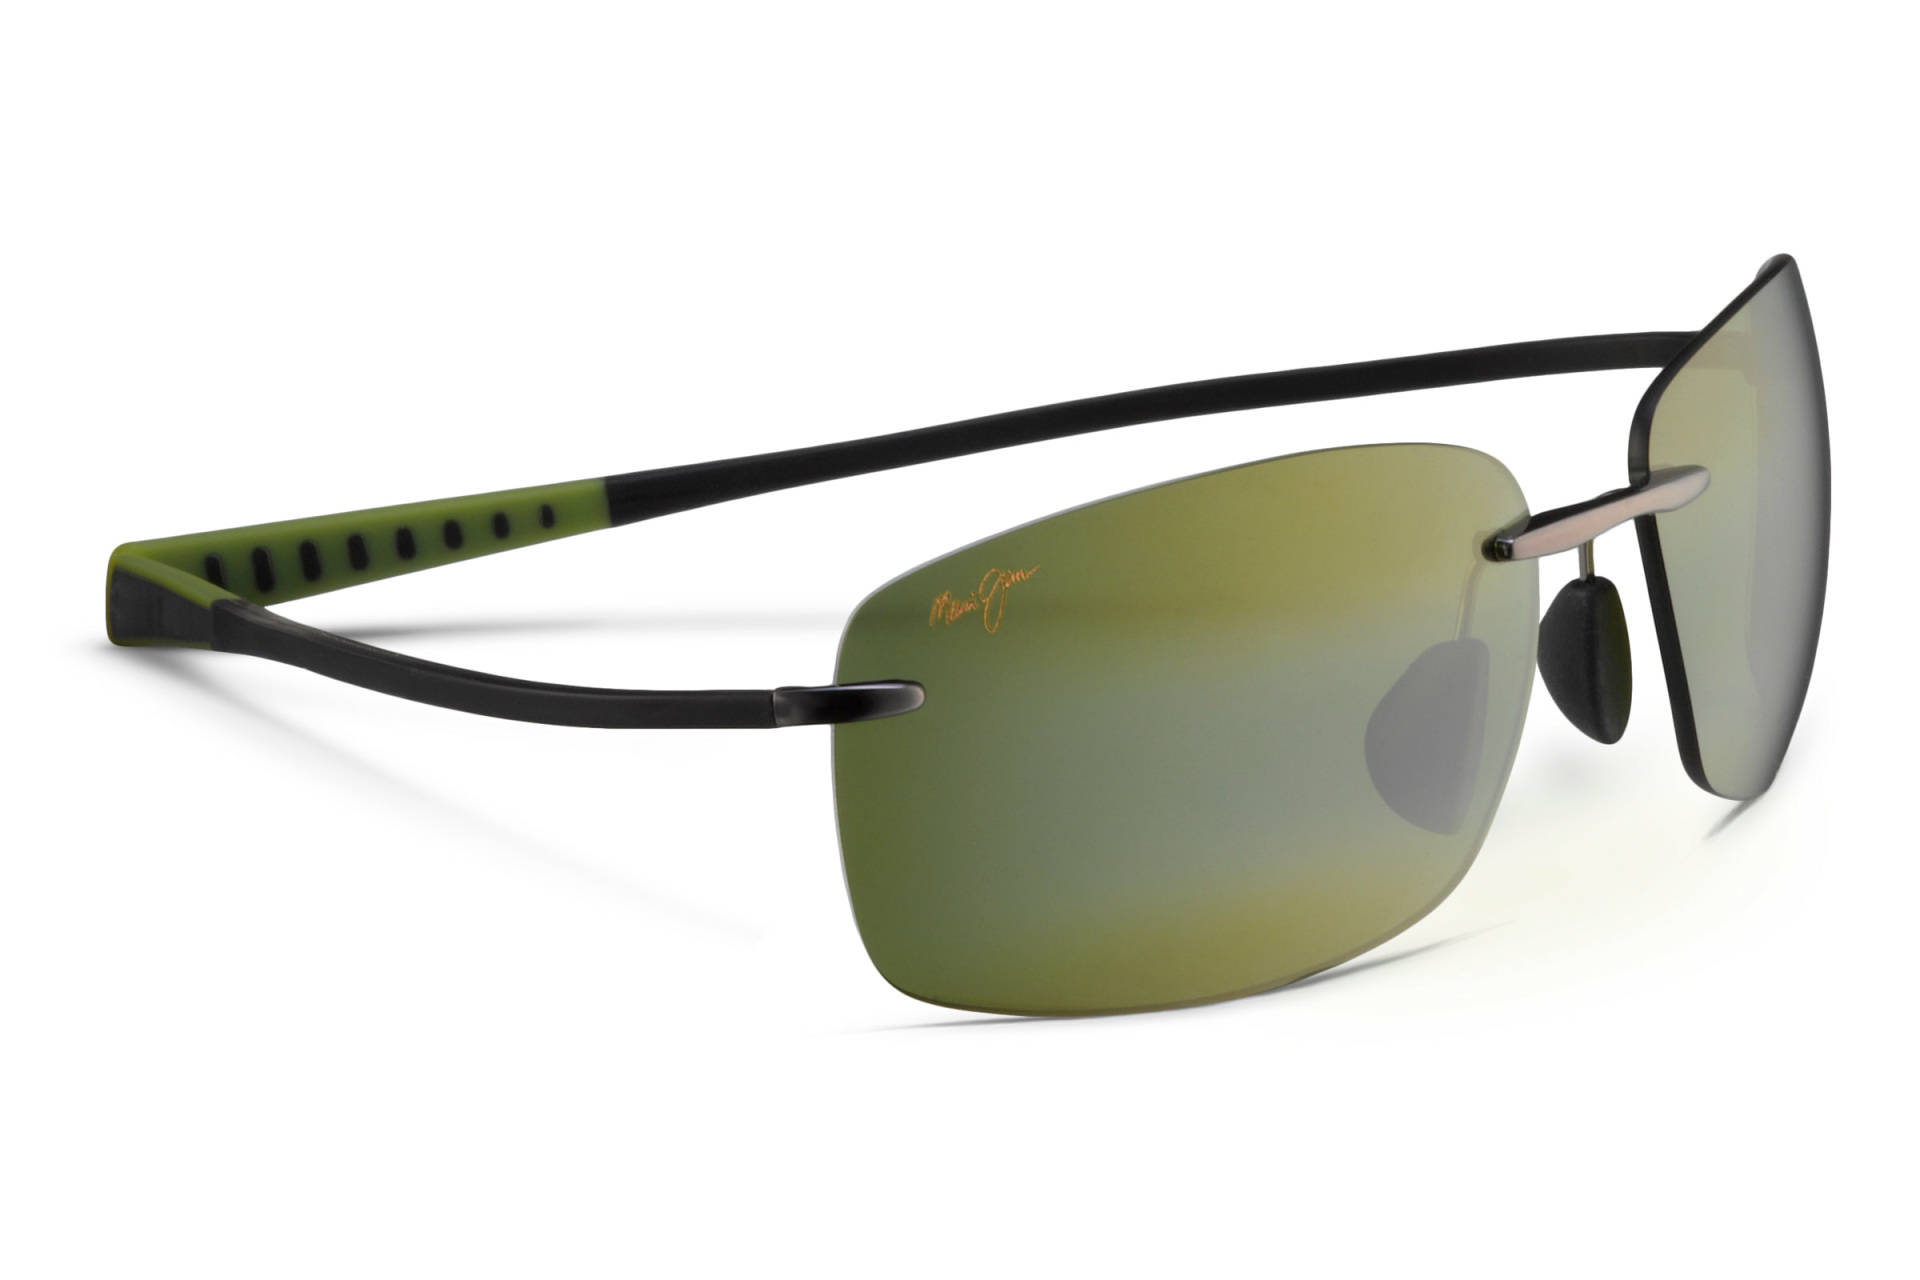 53d716af5789 Maui Jim - Untamed Flies and Tackle